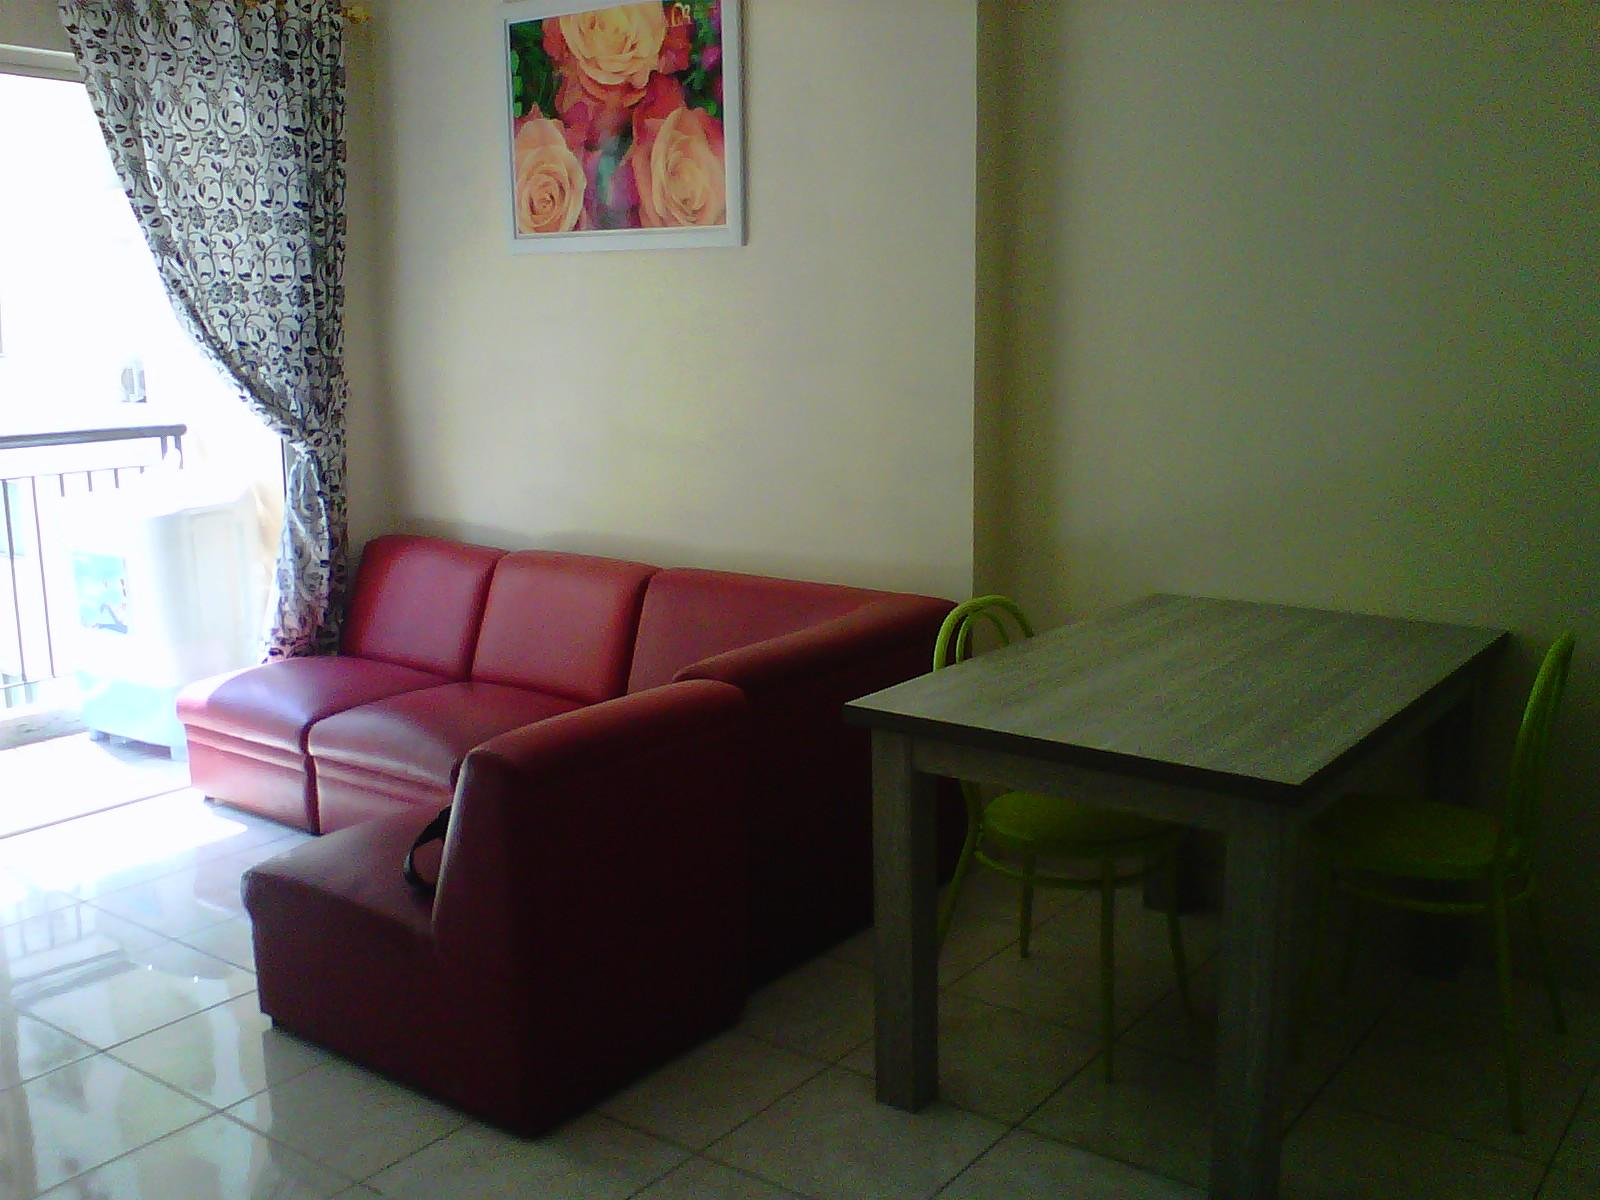 Apartemen City Home MOI - Clean And Comfy 2BR 12th Floor @ Apartment City Home By Adaru Property At MOI